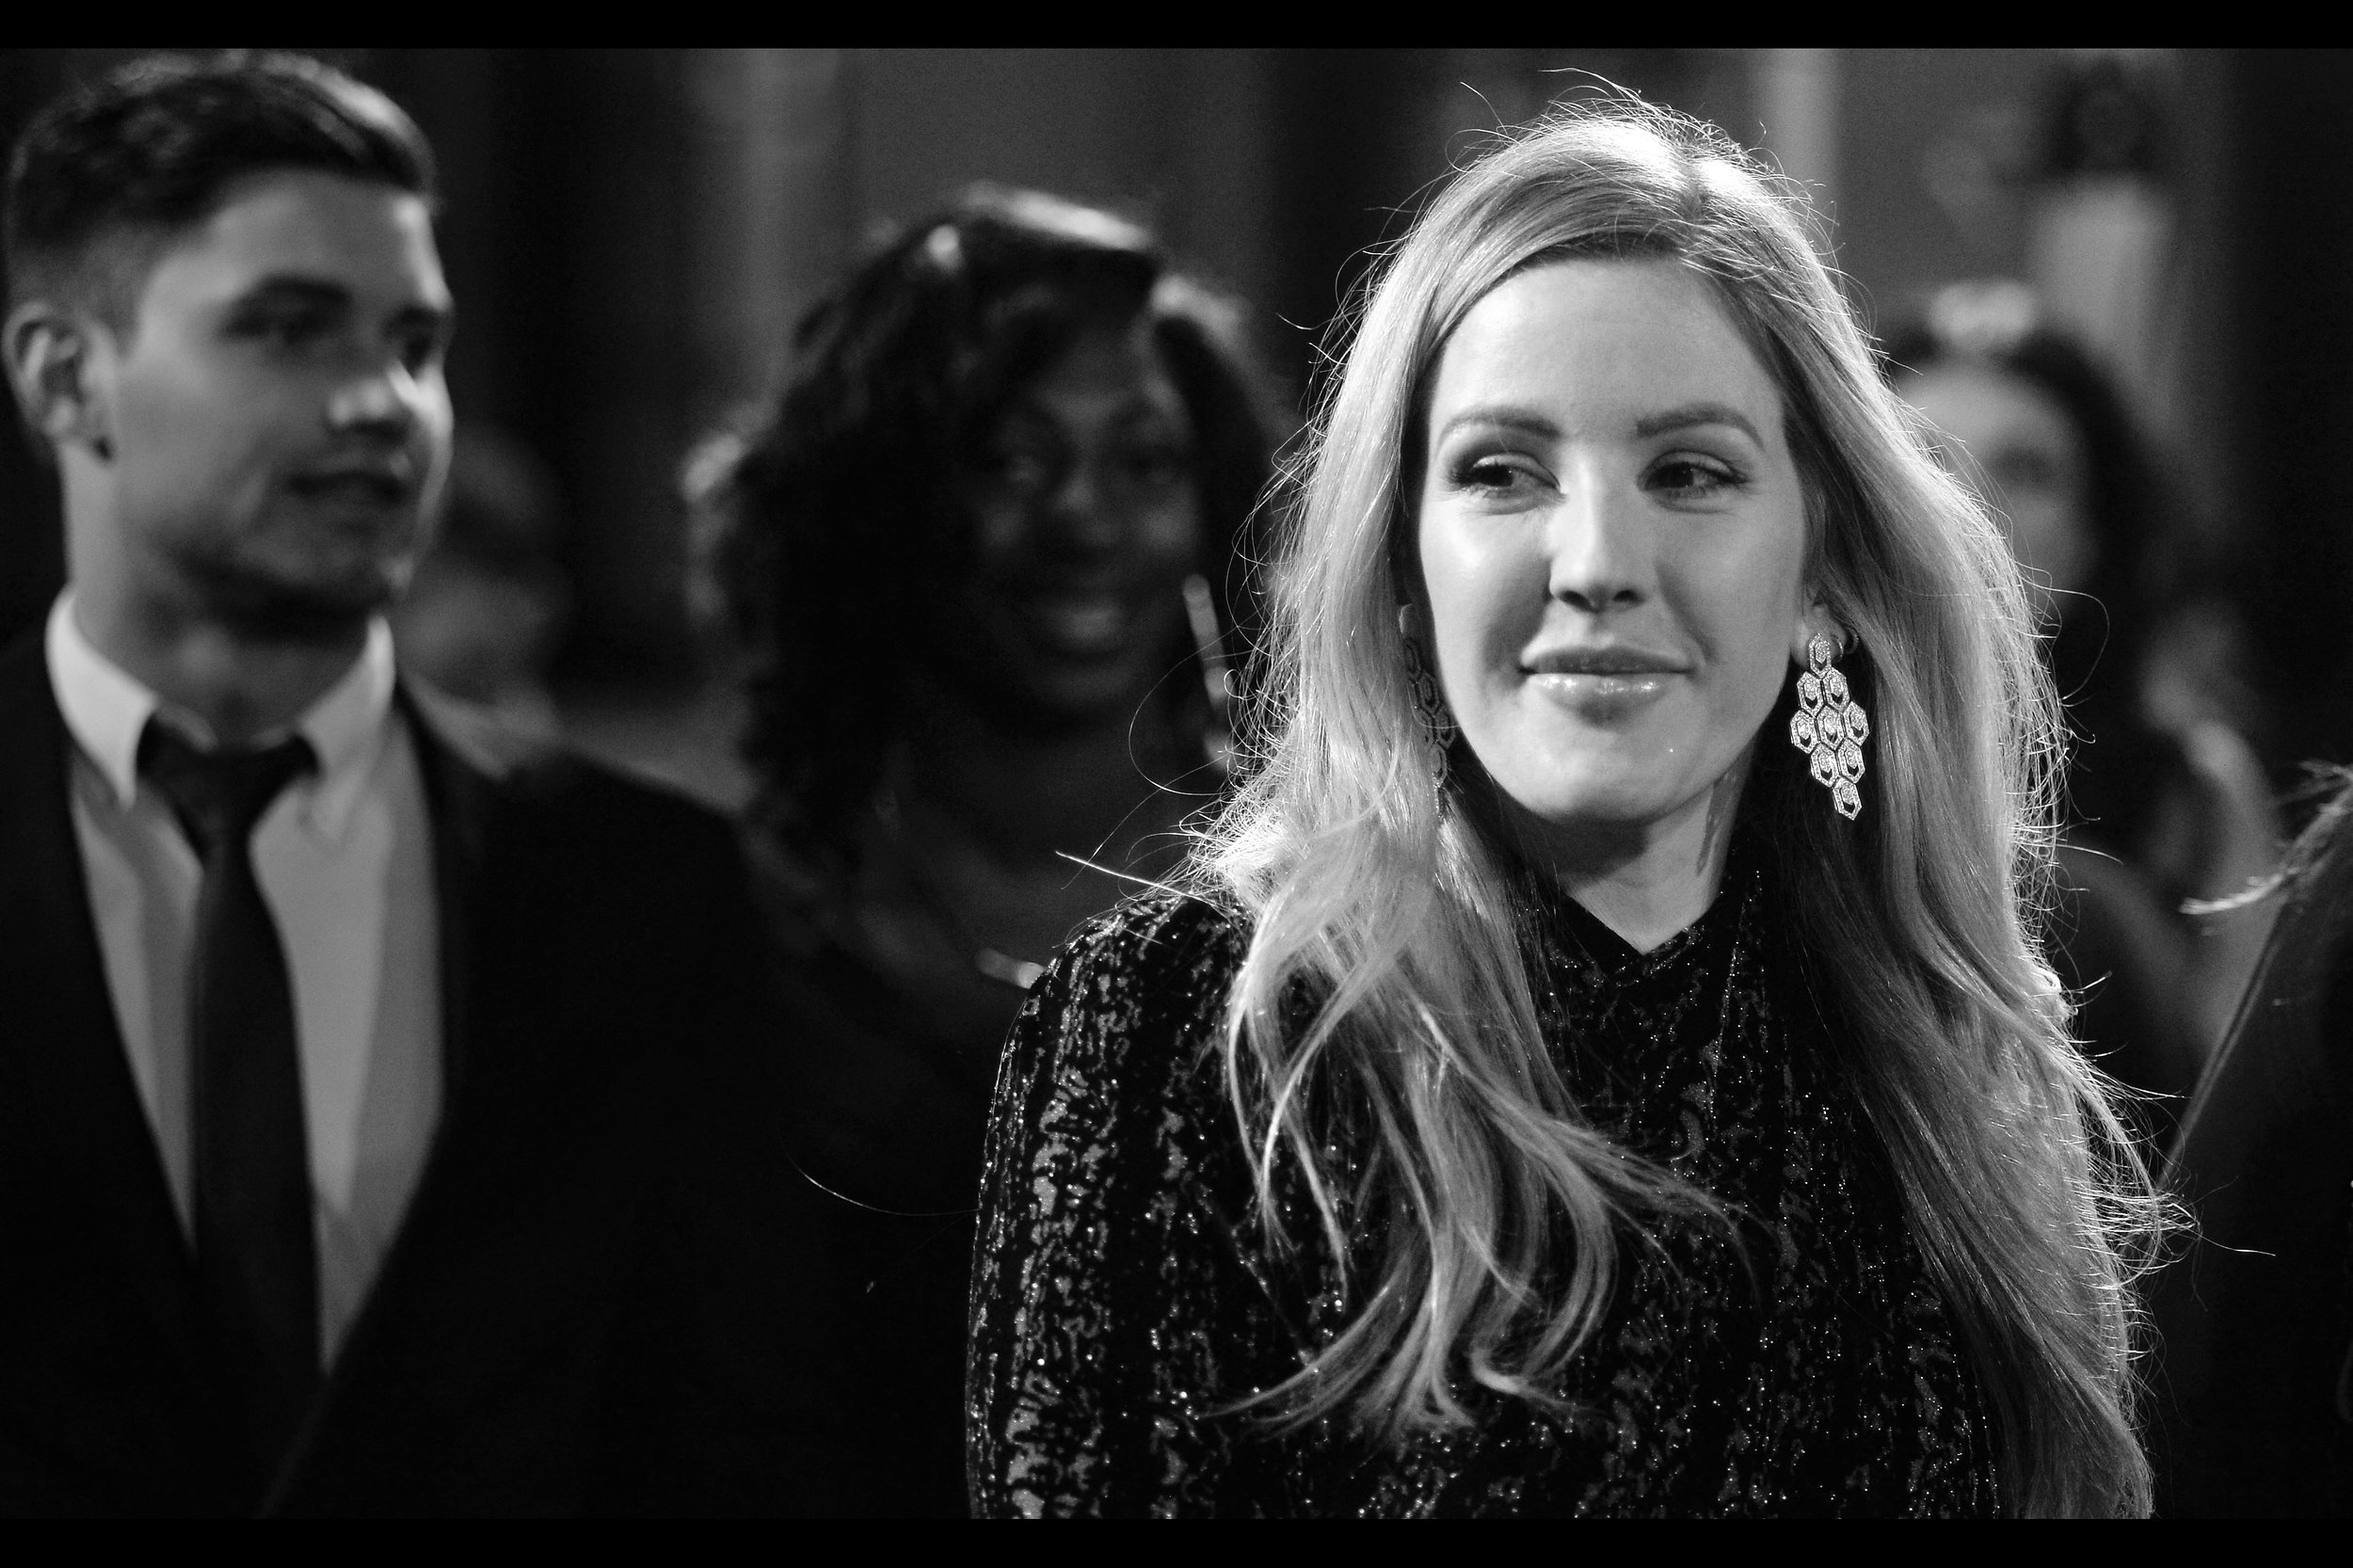 This is singer Ellie Goulding… and all I can say is she's looking a lot more steady on her feet than the last (only?) time I photographed her, which was at a GQ Awards a few years ago now. Not sure why I felt like mentioning that. I don't think she signed autographs for the Dealers.